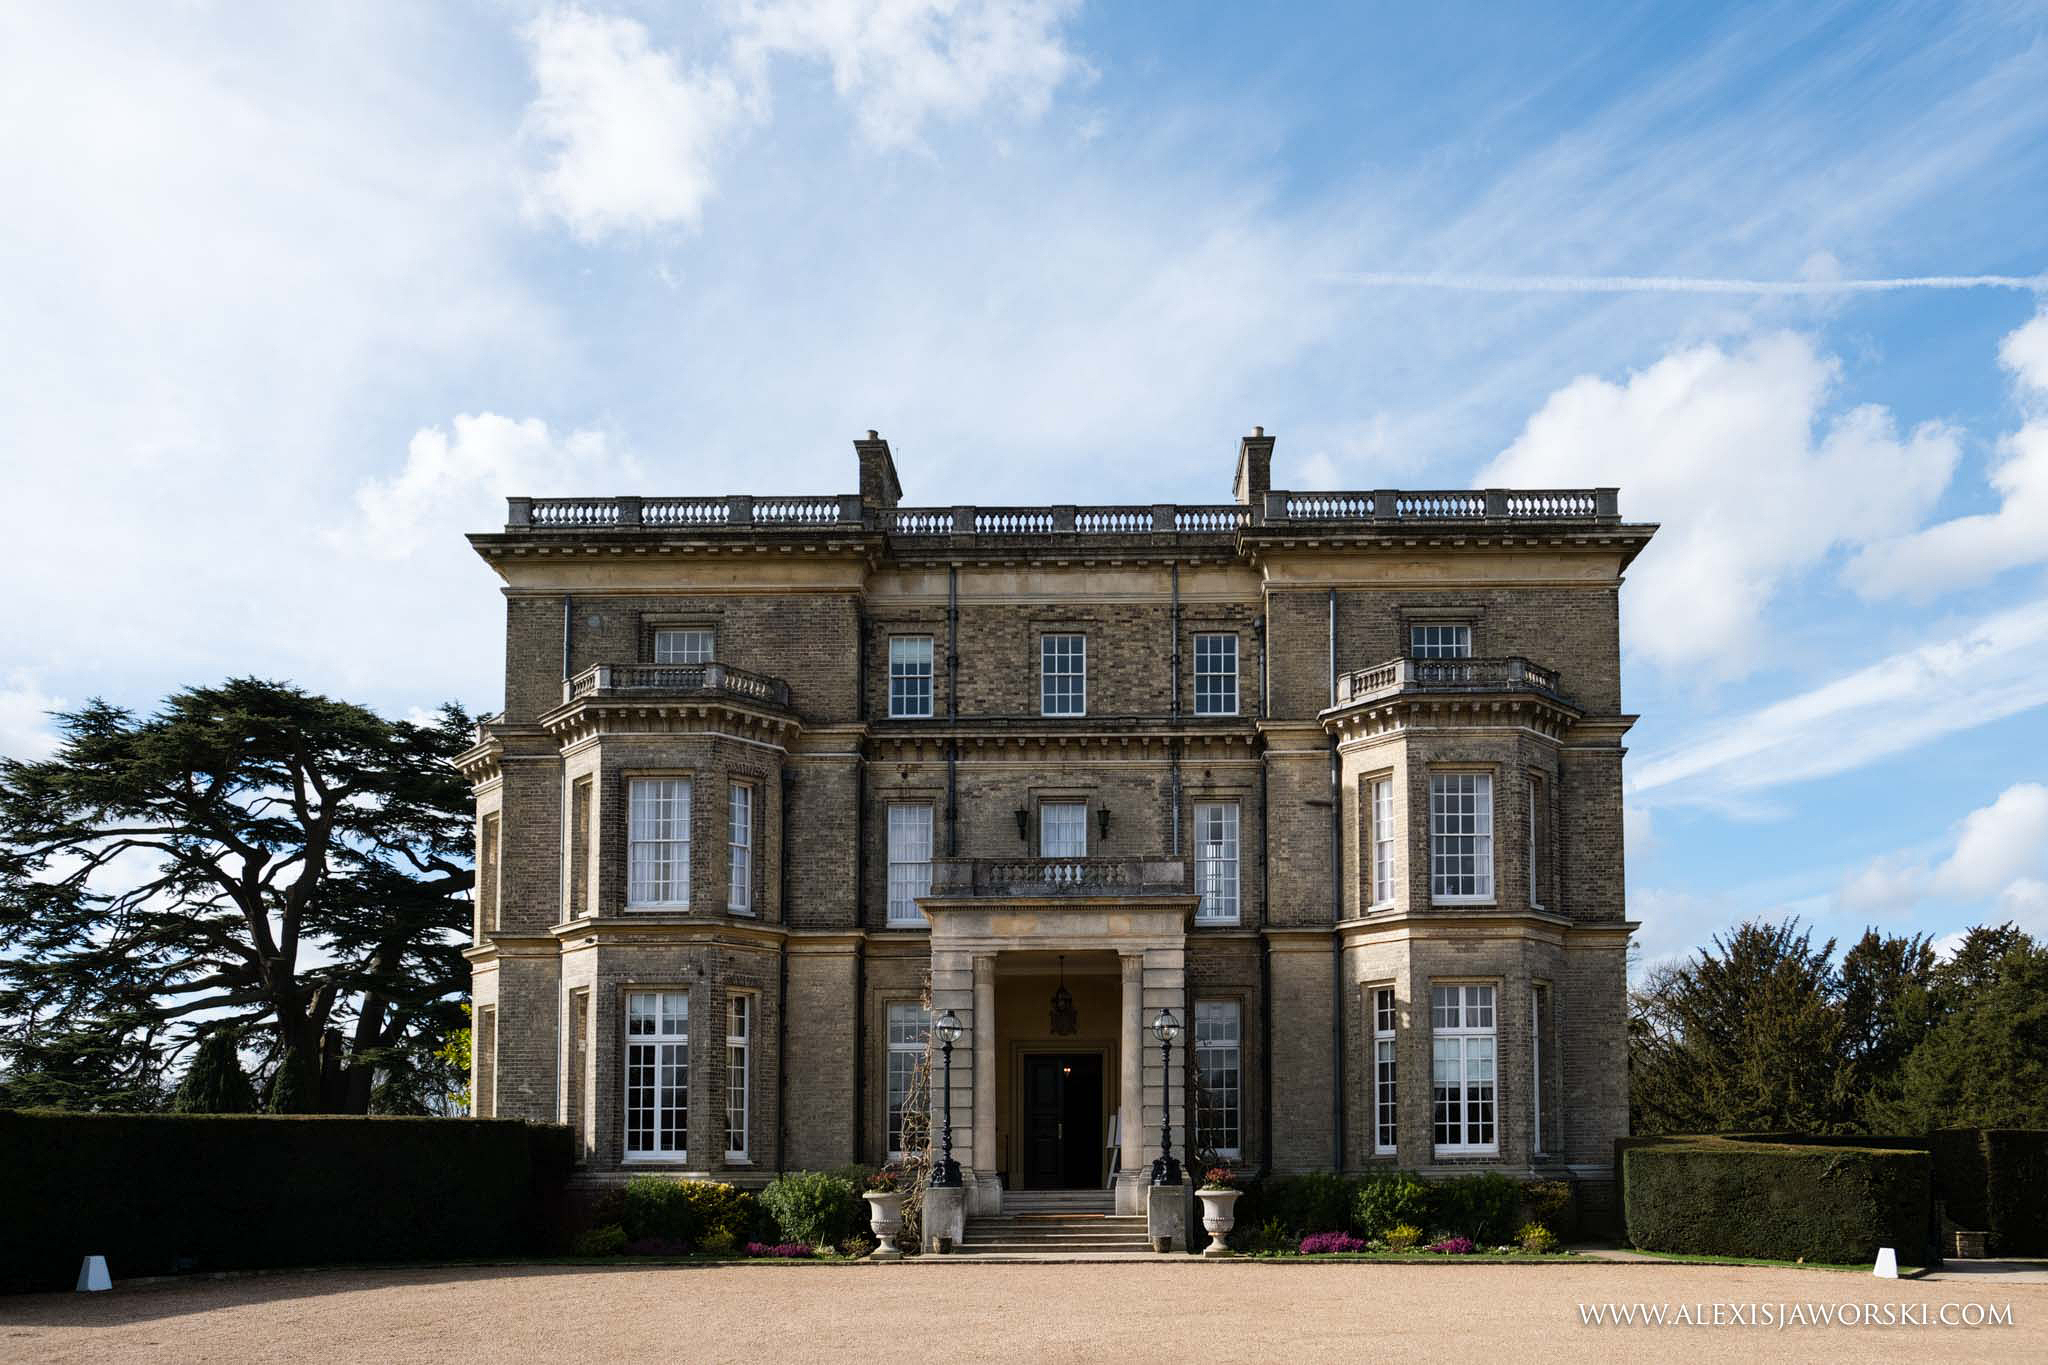 Image of Hedsor House